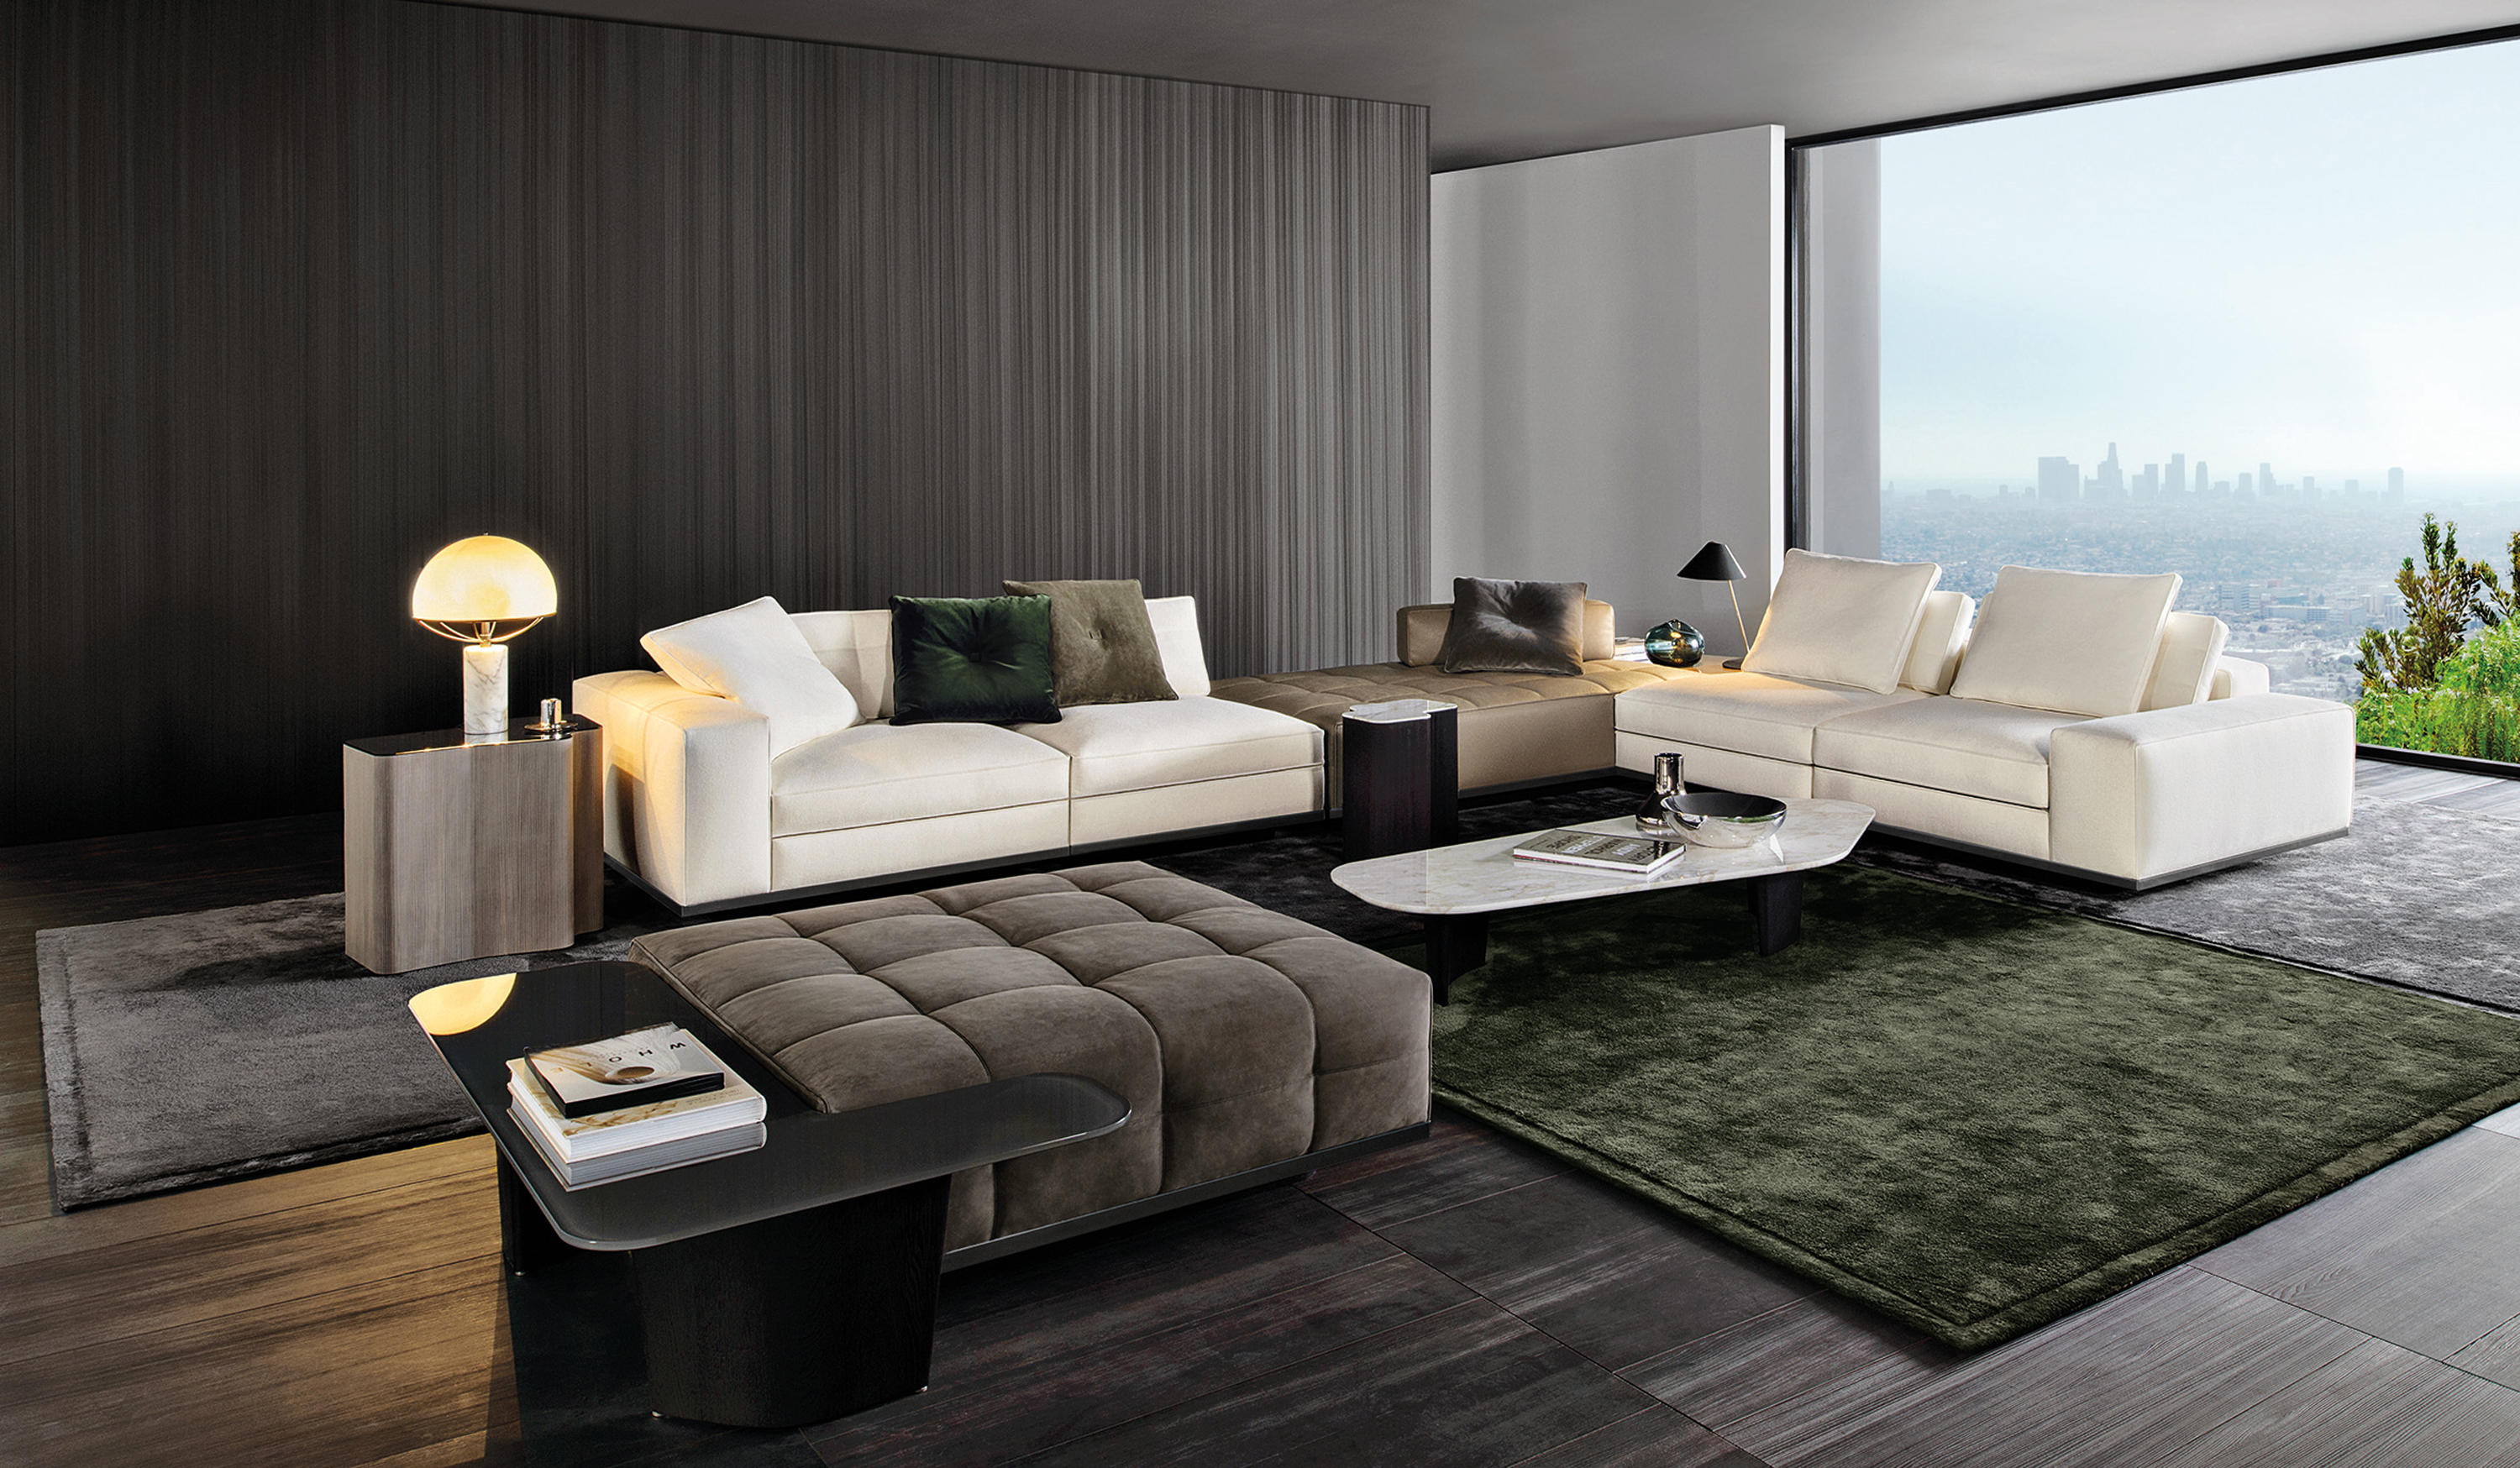 Lawrence Seating System Sofas Von Minotti Architonic